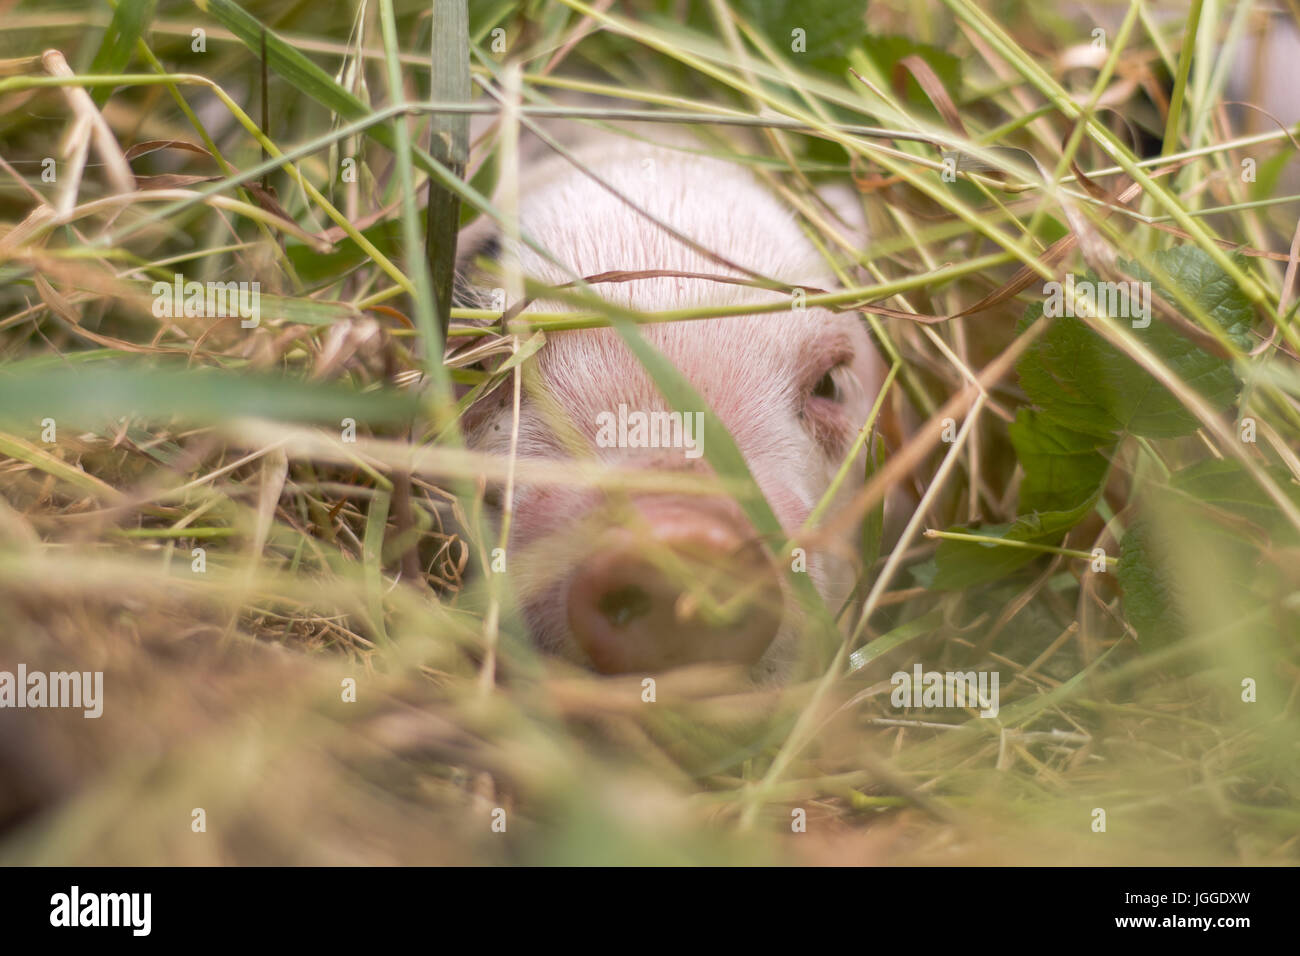 Piglet hiding in grass. Four day old domestic pigs outdoors, with black spots on pink skin - Stock Image